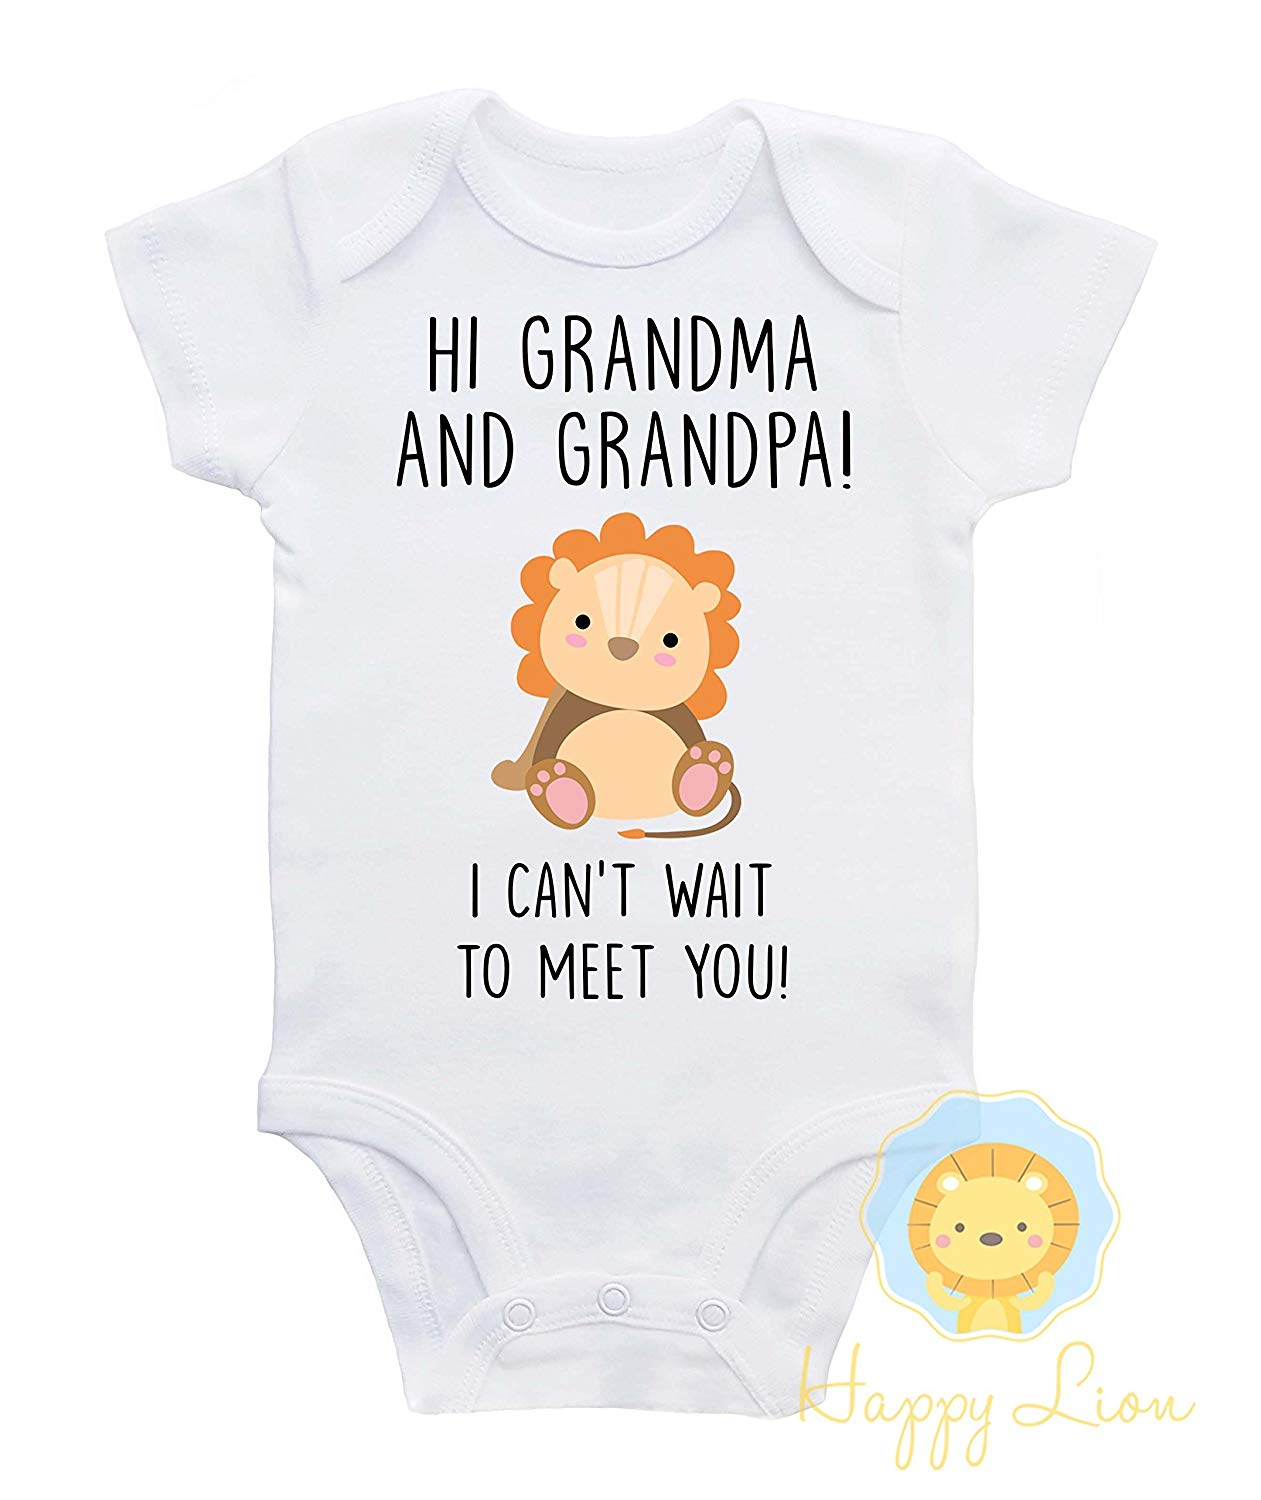 6648919e6 Get Quotations · Happy Lion Clothing - Grandparents announcement Onesie®, Grandparents  Onesie®, Pregnancy Announcement Onesie